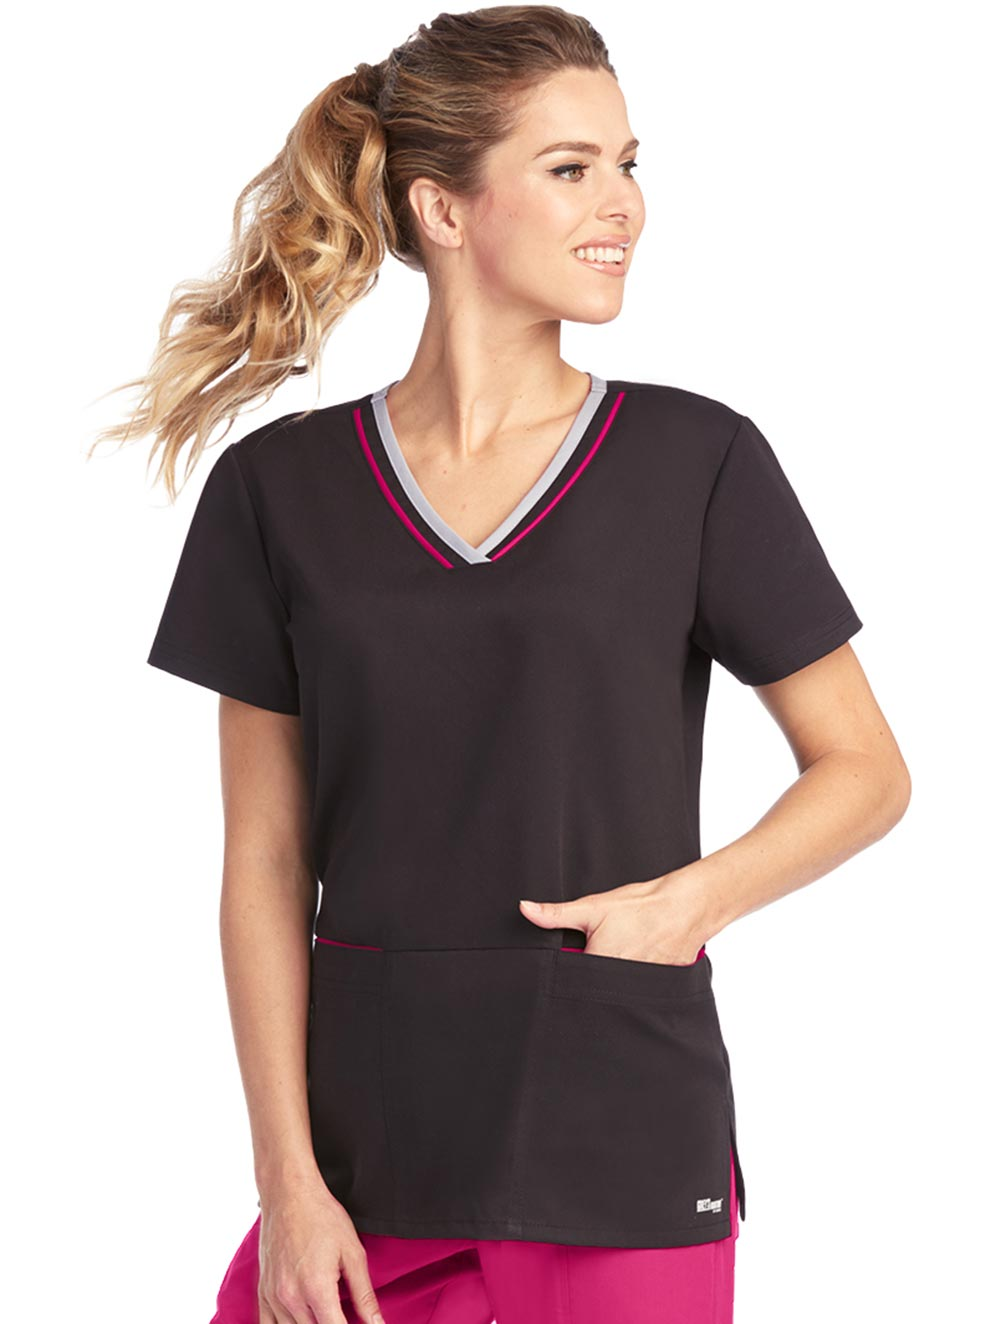 'Grey's Anatomy Active' V-Neck Top with Double Contrast Edge